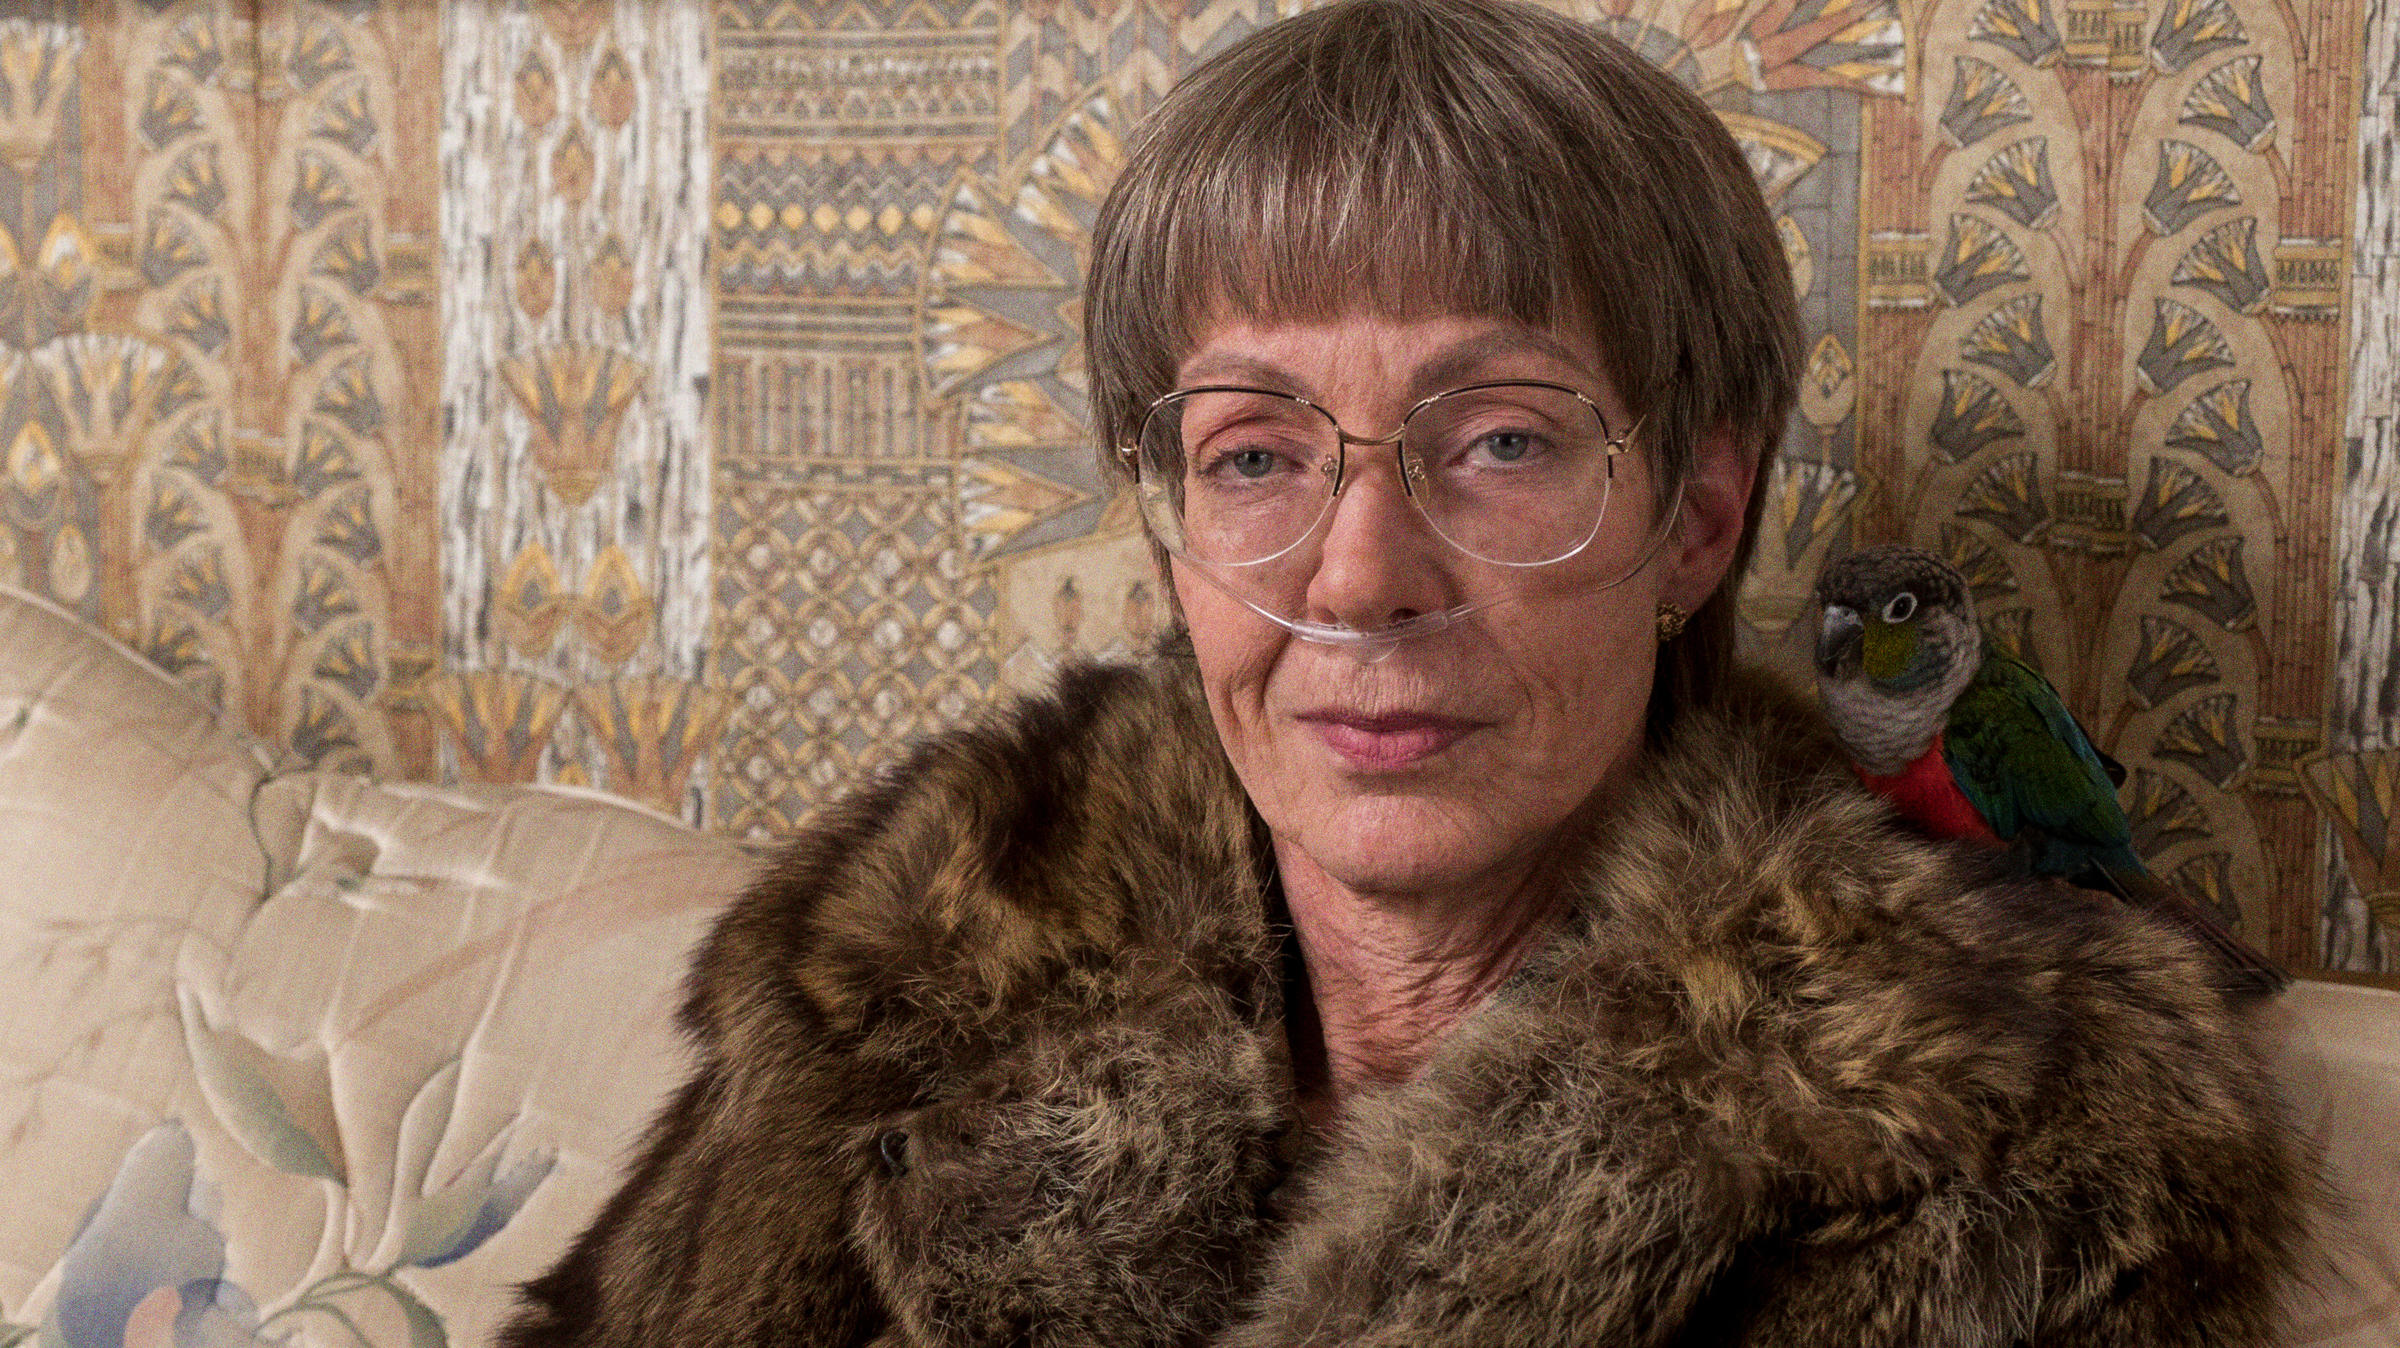 Tonya Harding 'loved' I, Tonya, according to Allison Janney